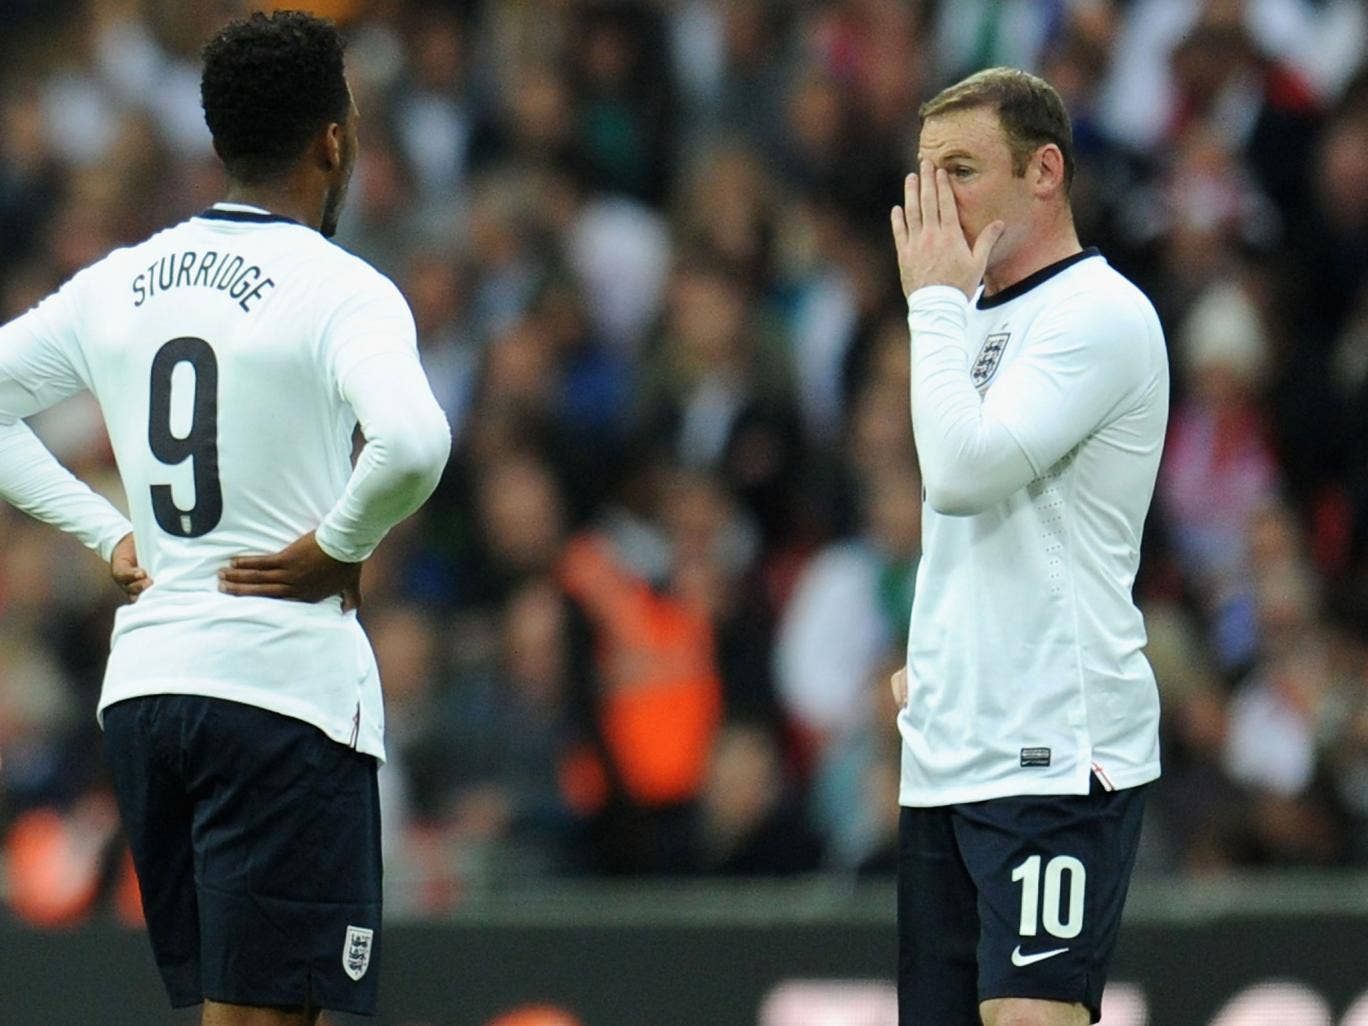 Daniel Sturridge and Wayne Rooney in action for England against Ireland in May